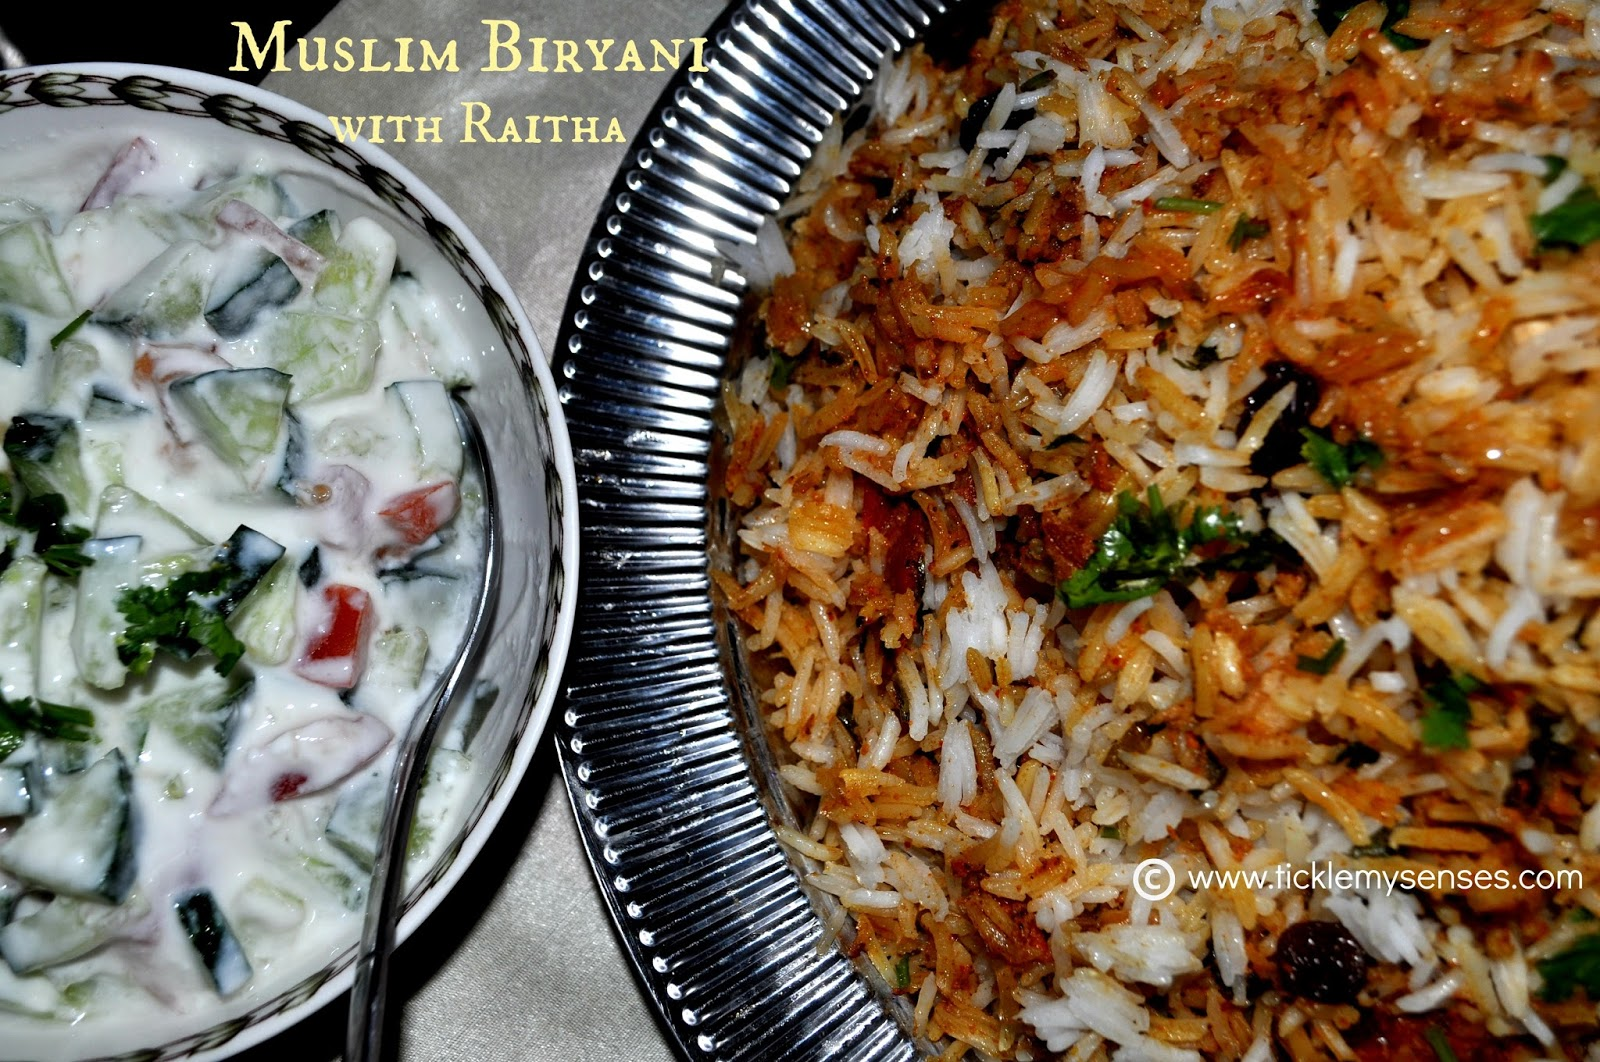 Tickle my senses eid mubarak and a delicious muslim biryani recipe eid mubarak and a delicious muslim biryani recipe forumfinder Choice Image